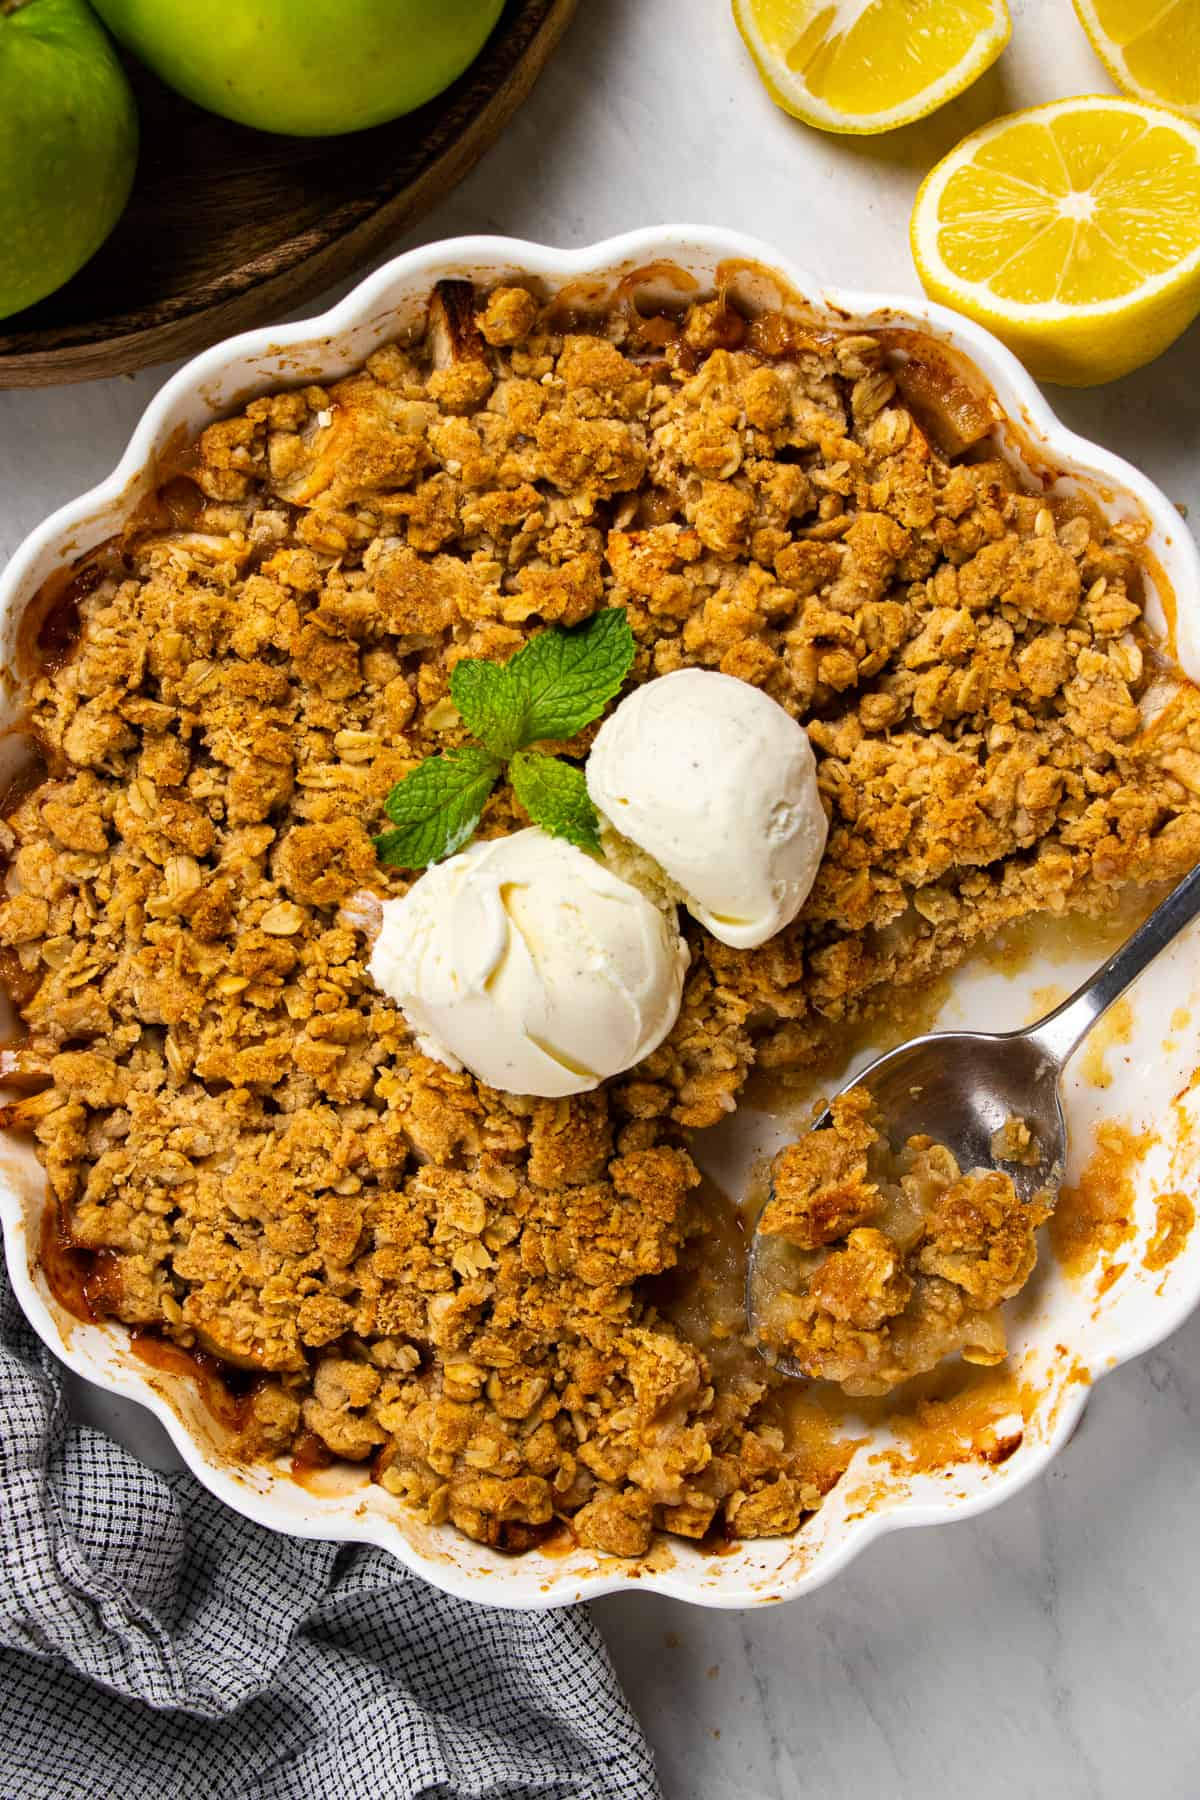 Overhead photos of apple crisp in a white baking pan with a scoop of ice cream on top.